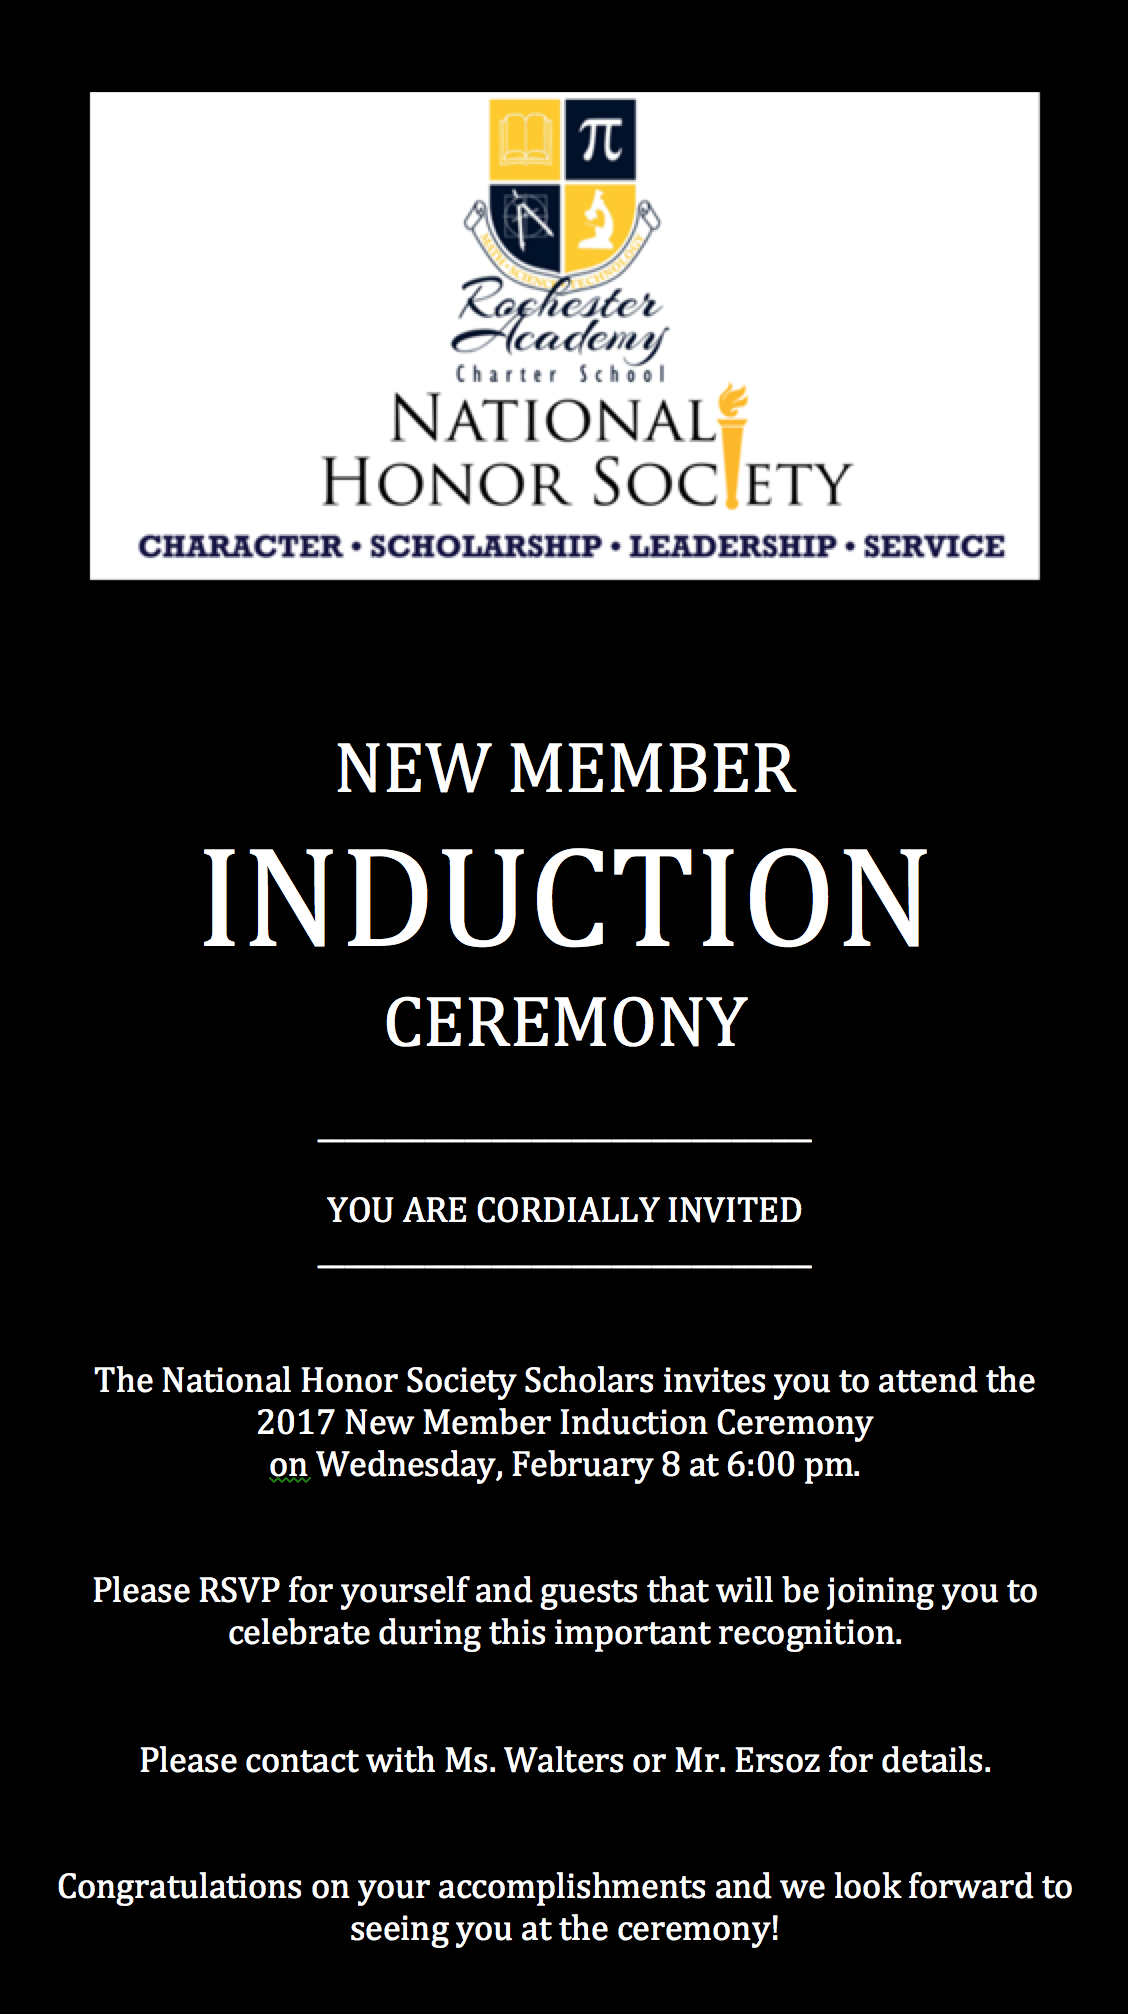 Nhs induction ceremony program template.